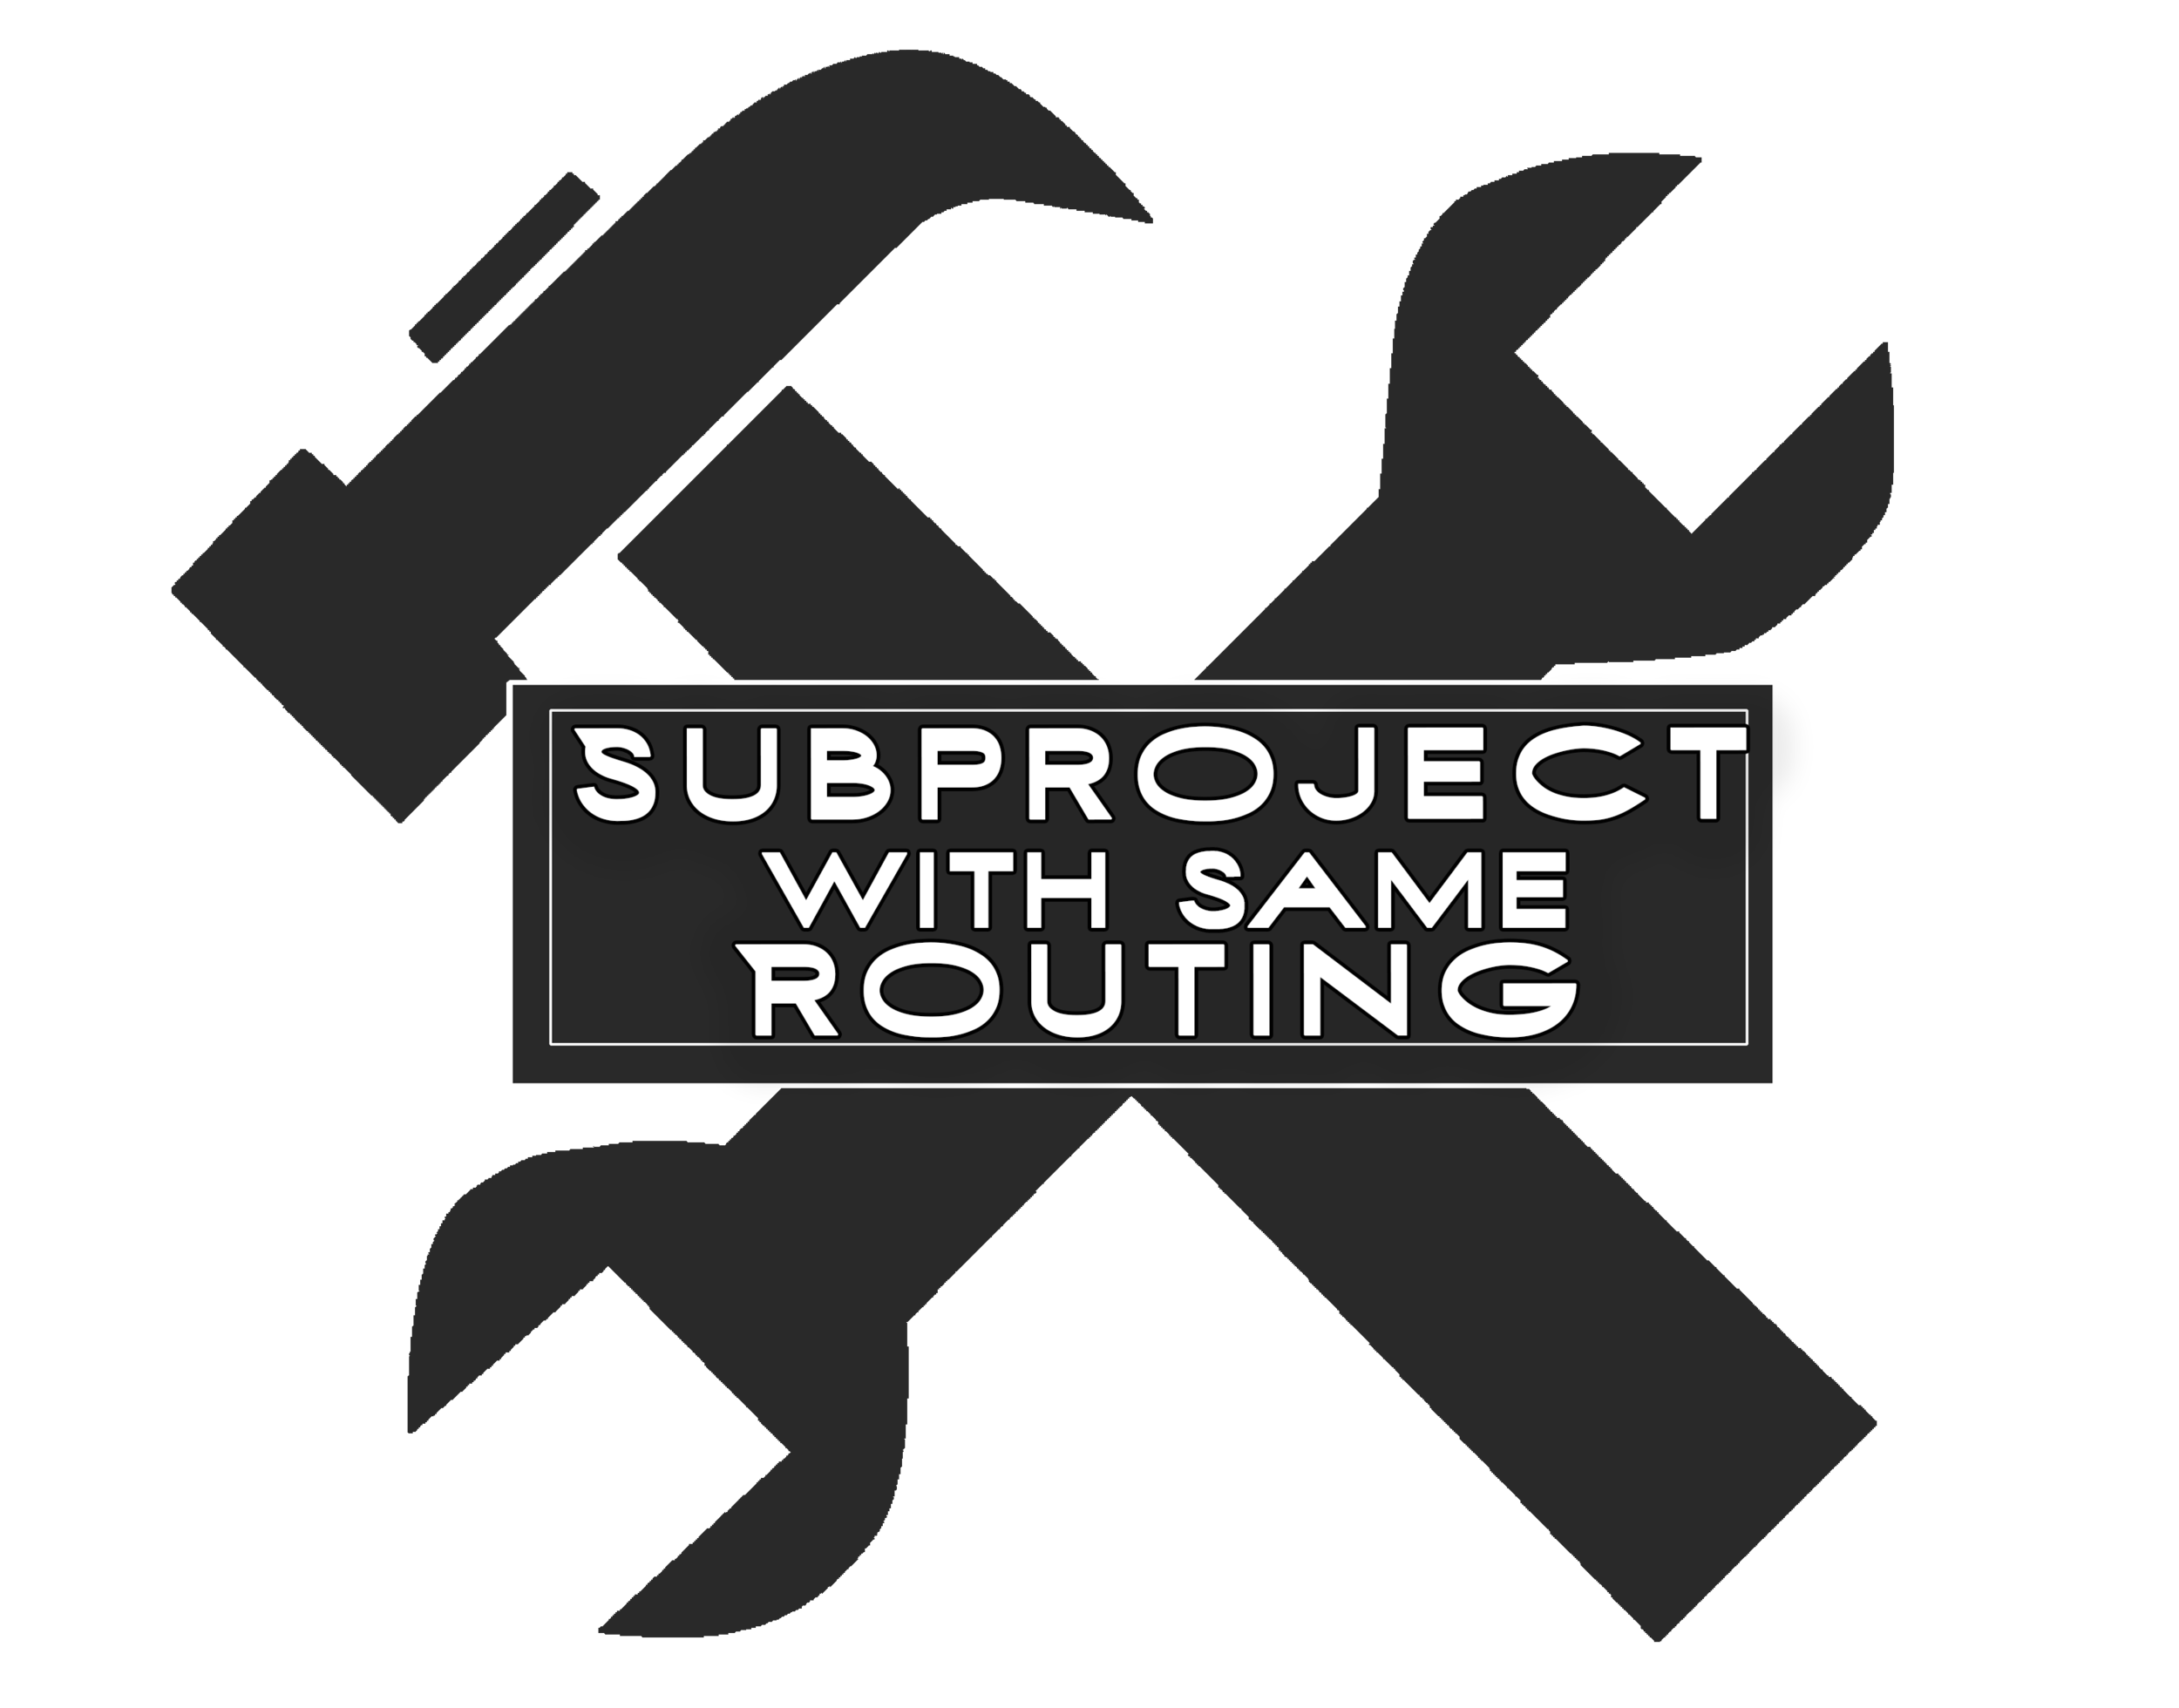 subproject.png